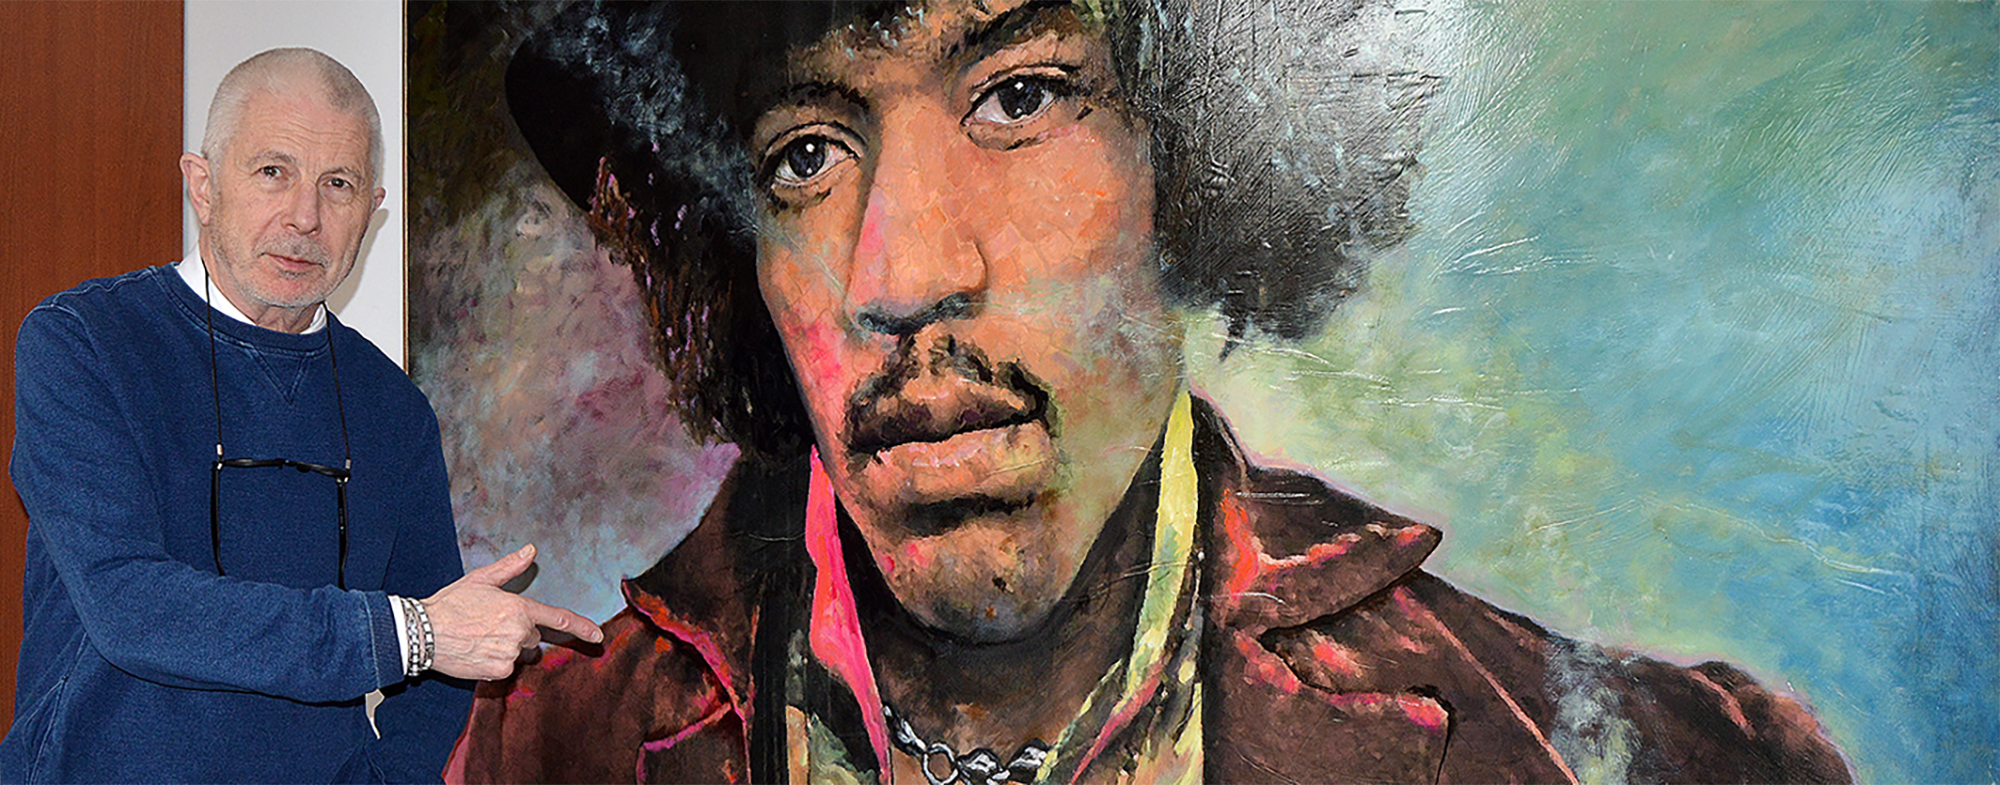 Marcello's Art Factory and Rock Gallery Jimi Hendrix